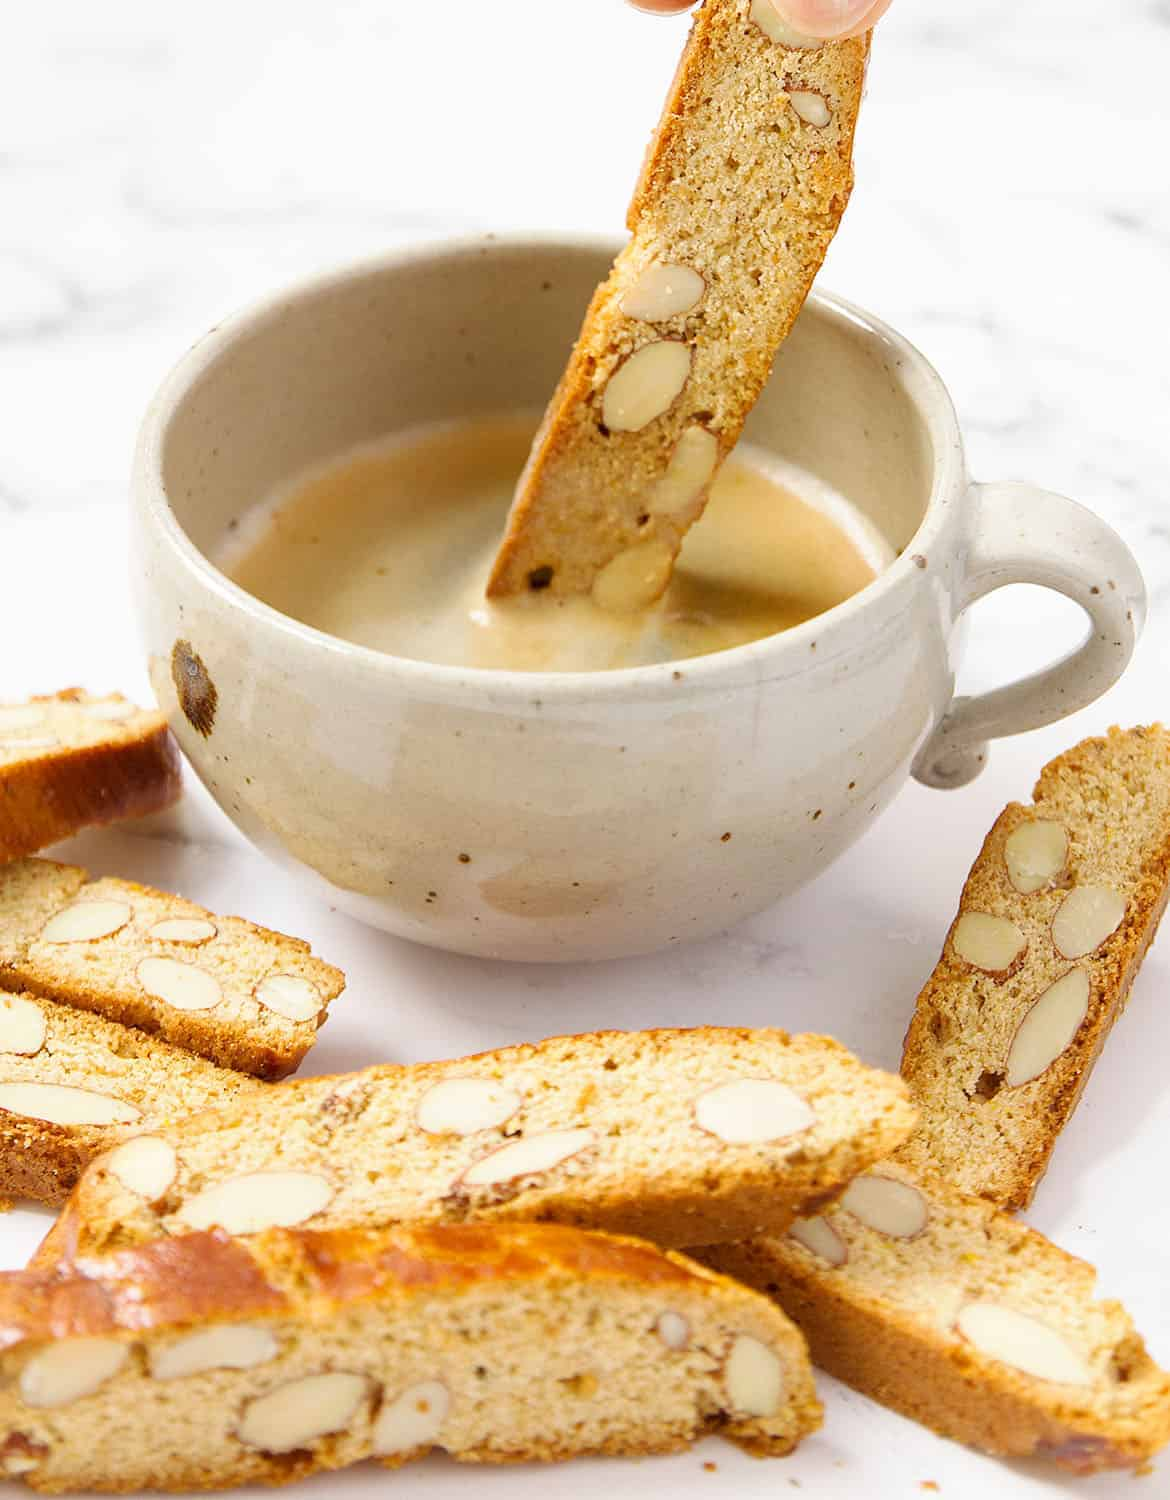 You can't resist to these addictive and crunchy Italian almond biscotti. They're easy to make, packed with flavors, texture and wholesome ingredients!